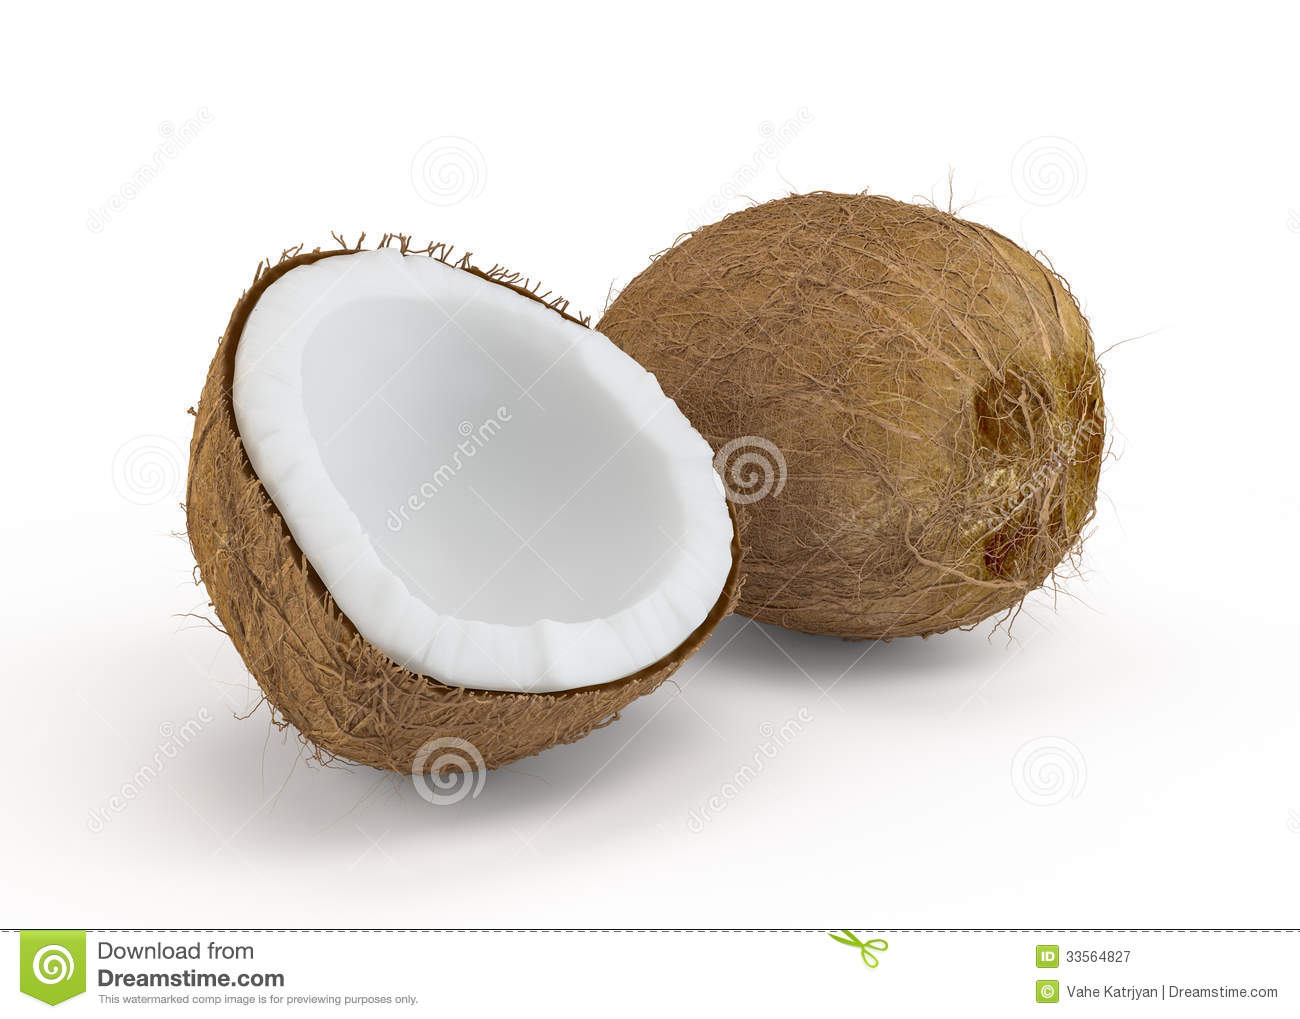 how to cut open drinking coconut